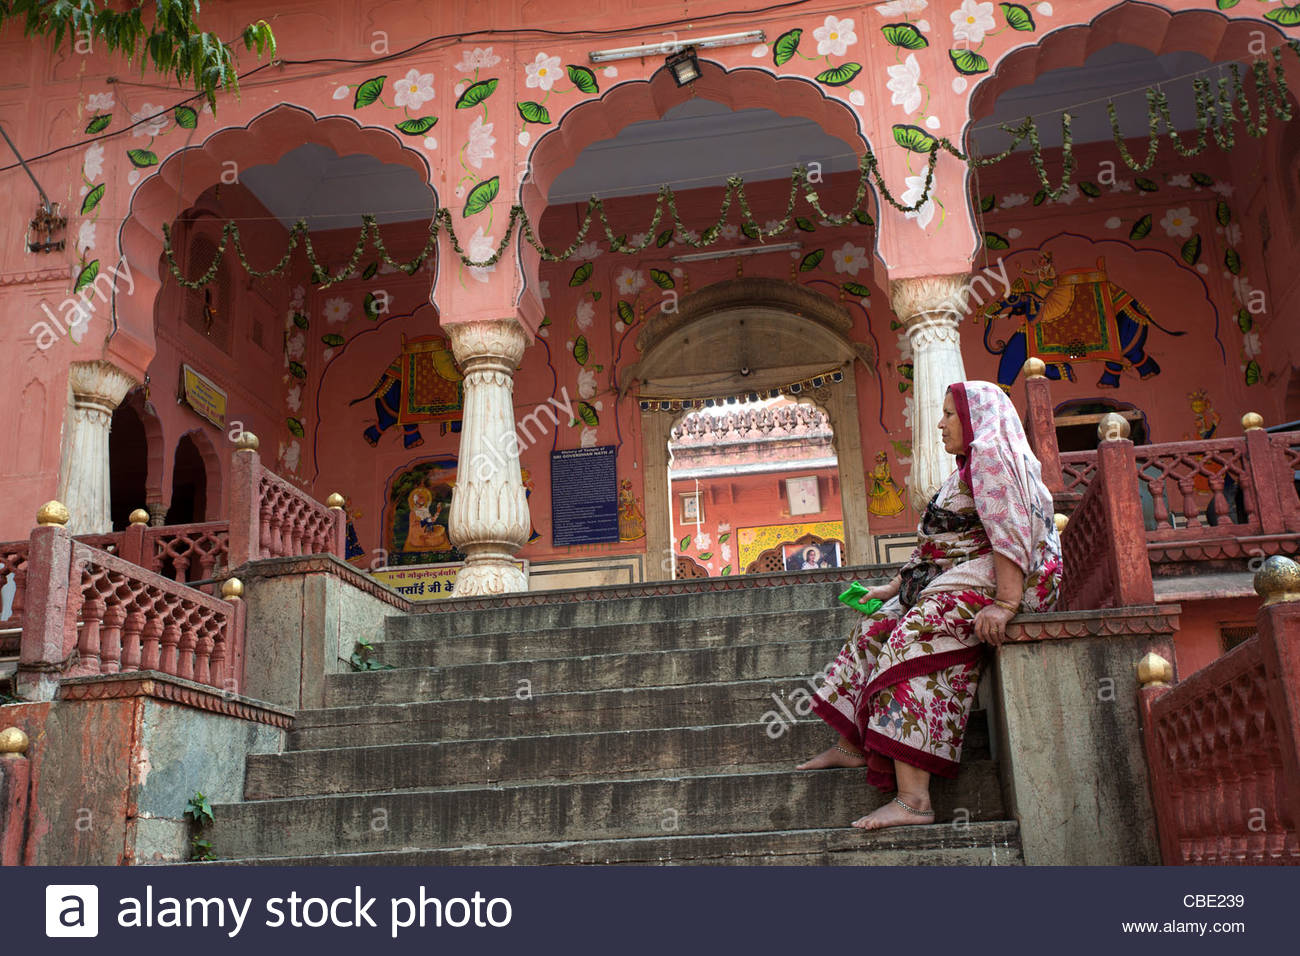 Une dame se repose devant un temple à l'ancienne ville de Jaipur, Rajasthan, Inde Photo Stock